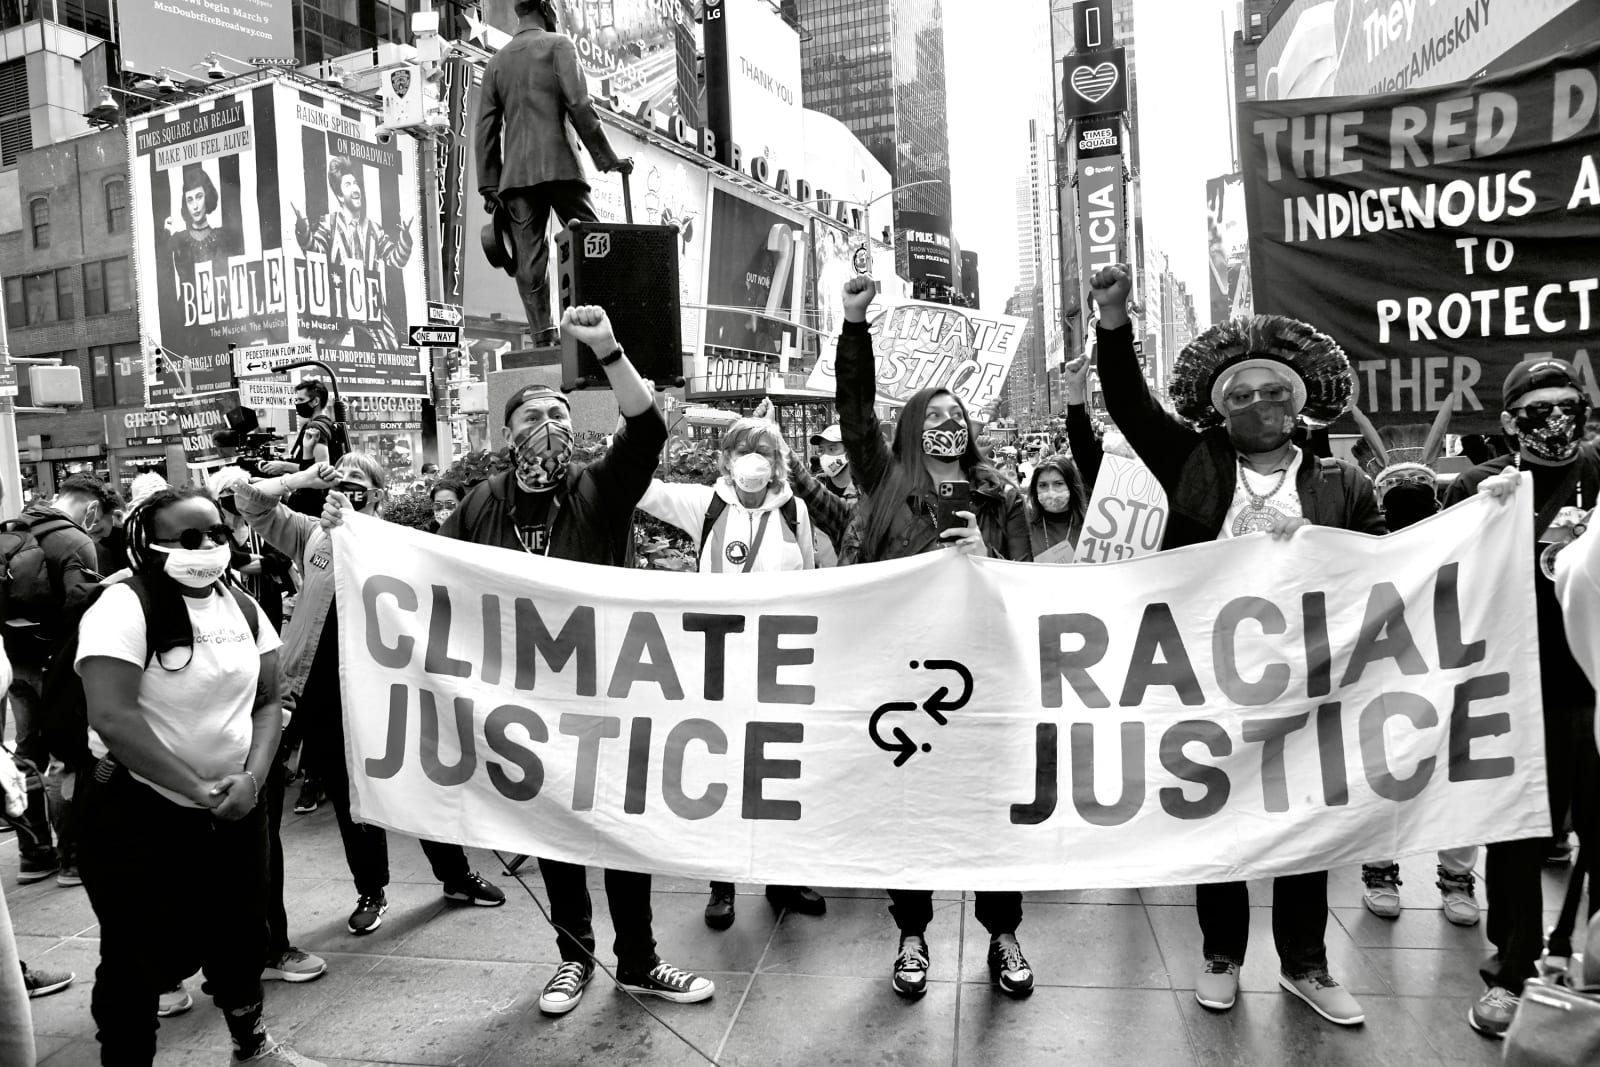 Builder Levy, March for Climate Justice and Racial Justice, 2020